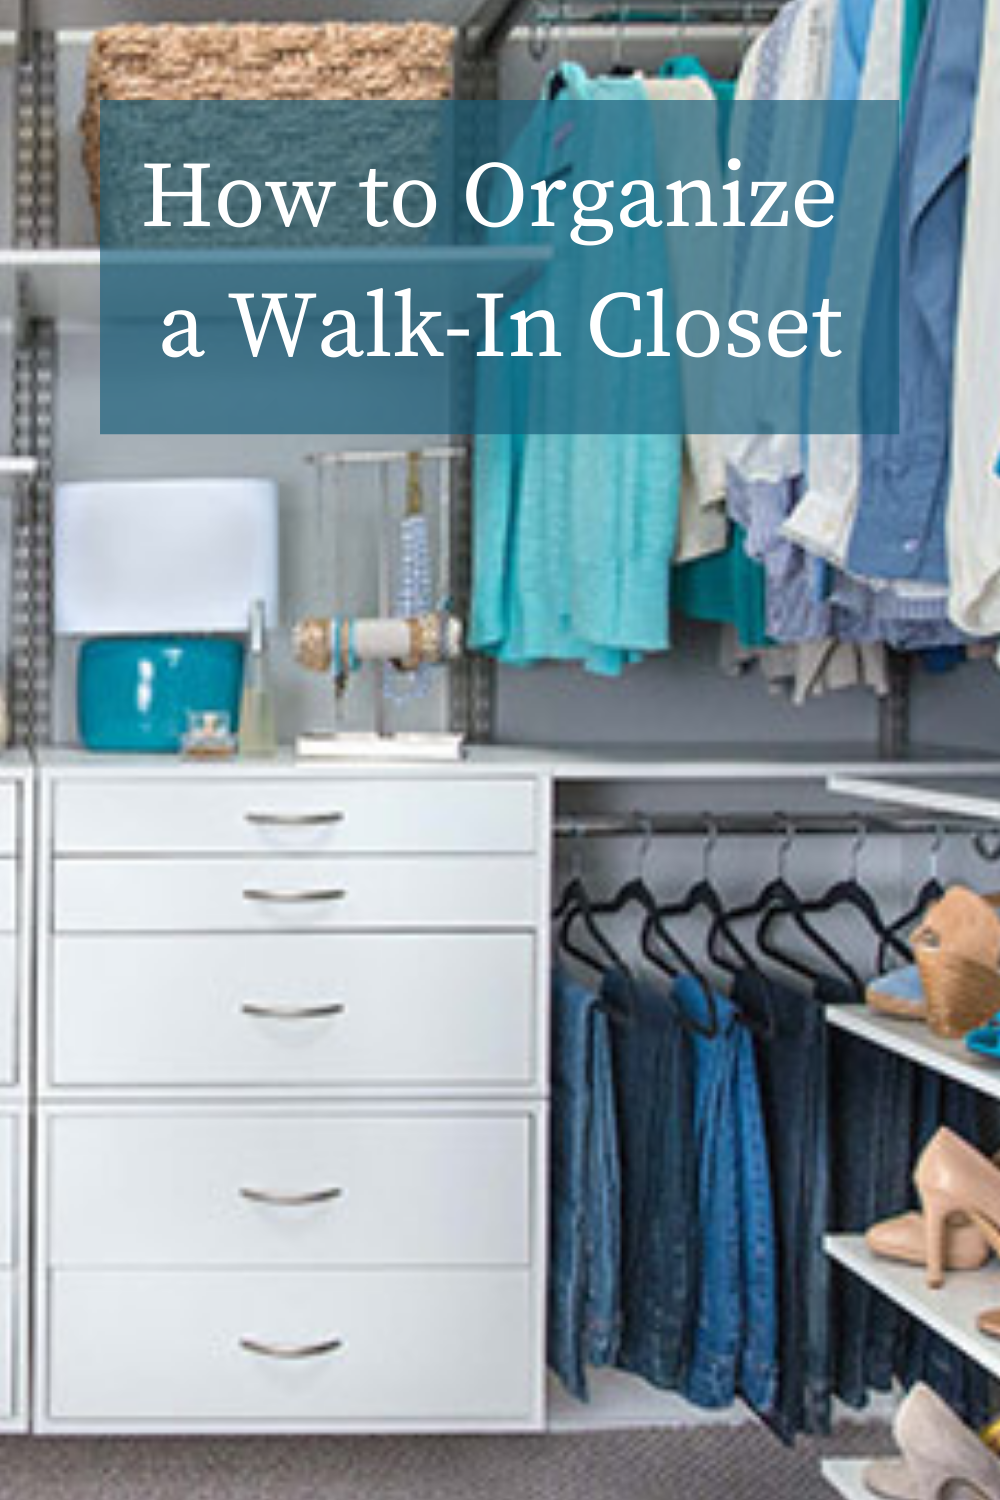 How To Organize Your Walk In Closet Budget Dumpster In 2021 Closet Hacks Organizing Organizing Walk In Closet Walk In Closet